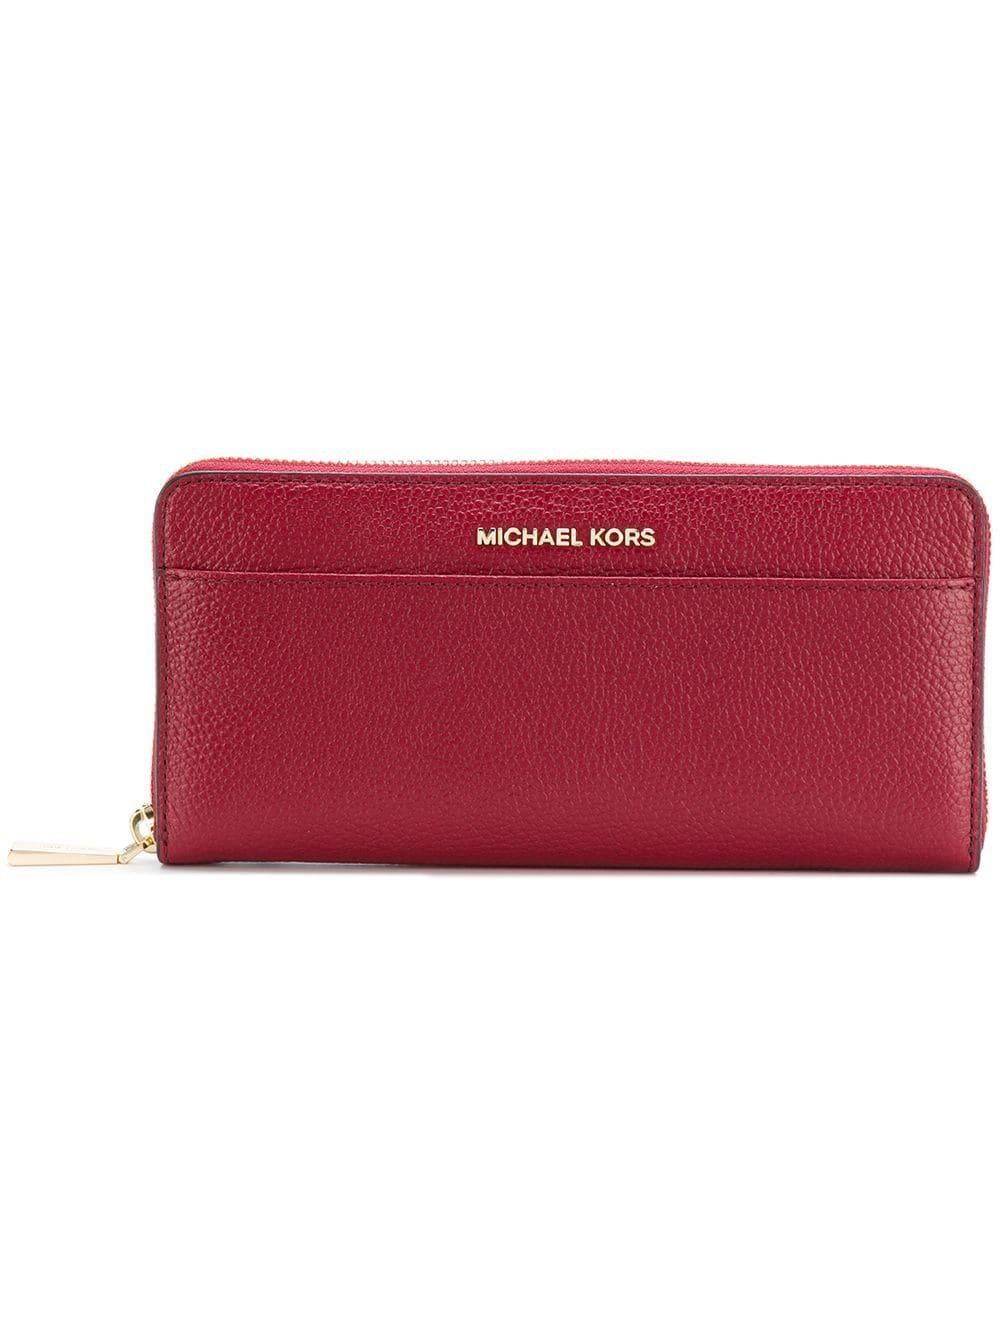 369147d1c06b2 Michael Michael Kors Mercer Leather Wallet in Red - Save ...